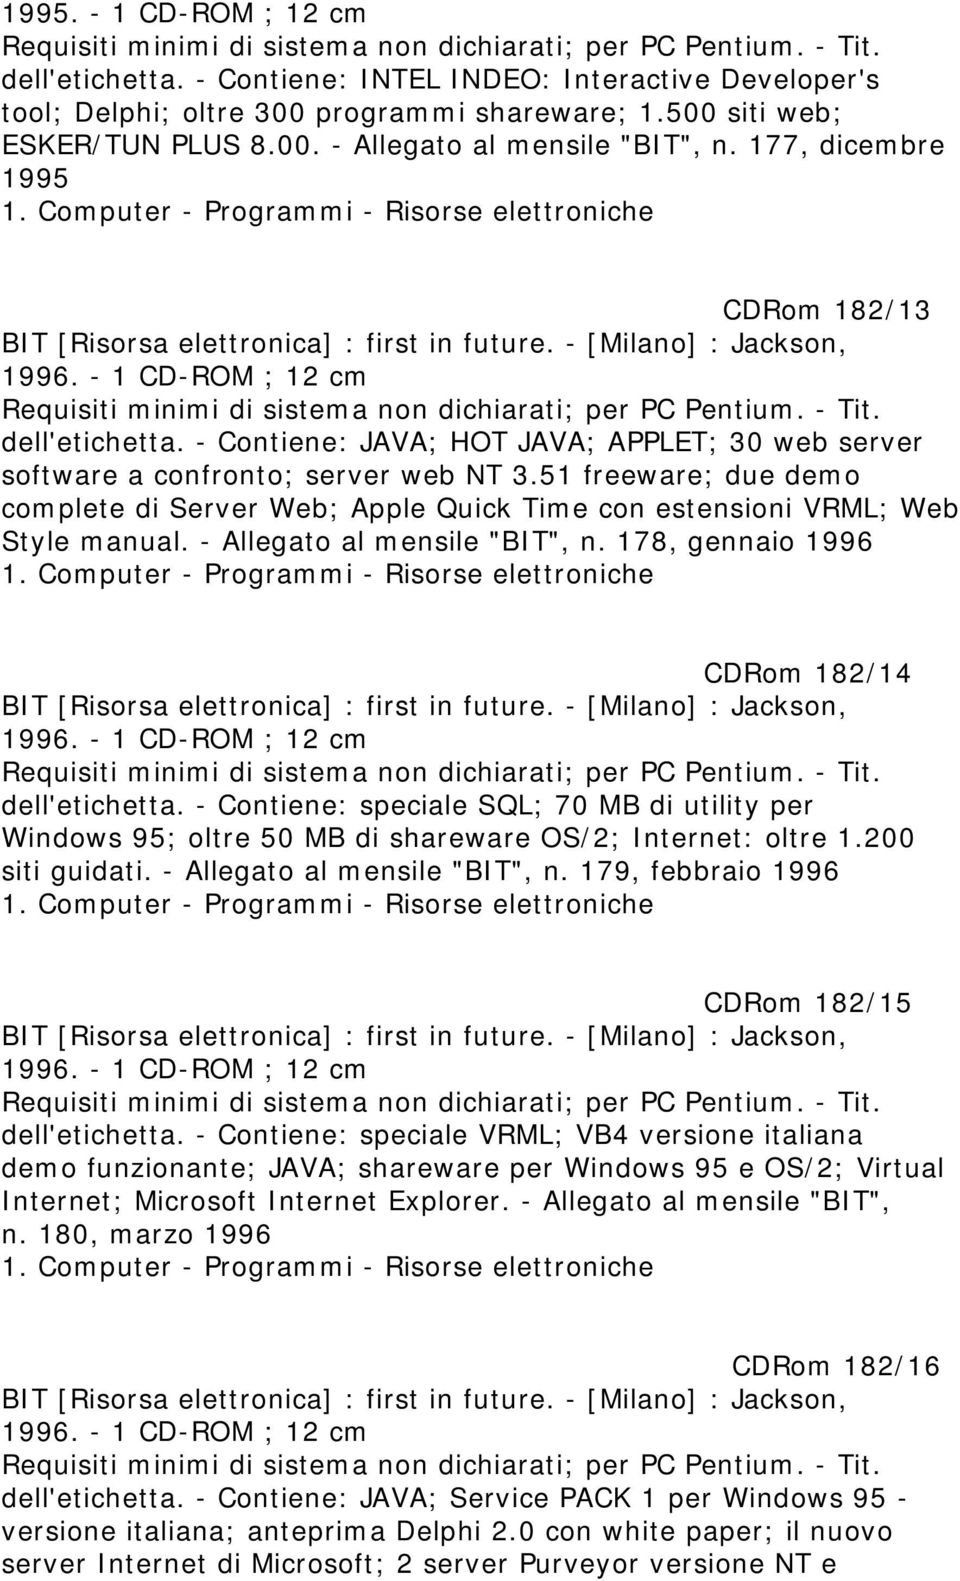 - Contiene: JAVA; HOT JAVA; APPLET; 30 web server software a confronto; server web NT 3.51 freeware; due demo complete di Server Web; Apple Quick Time con estensioni VRML; Web Style manual.